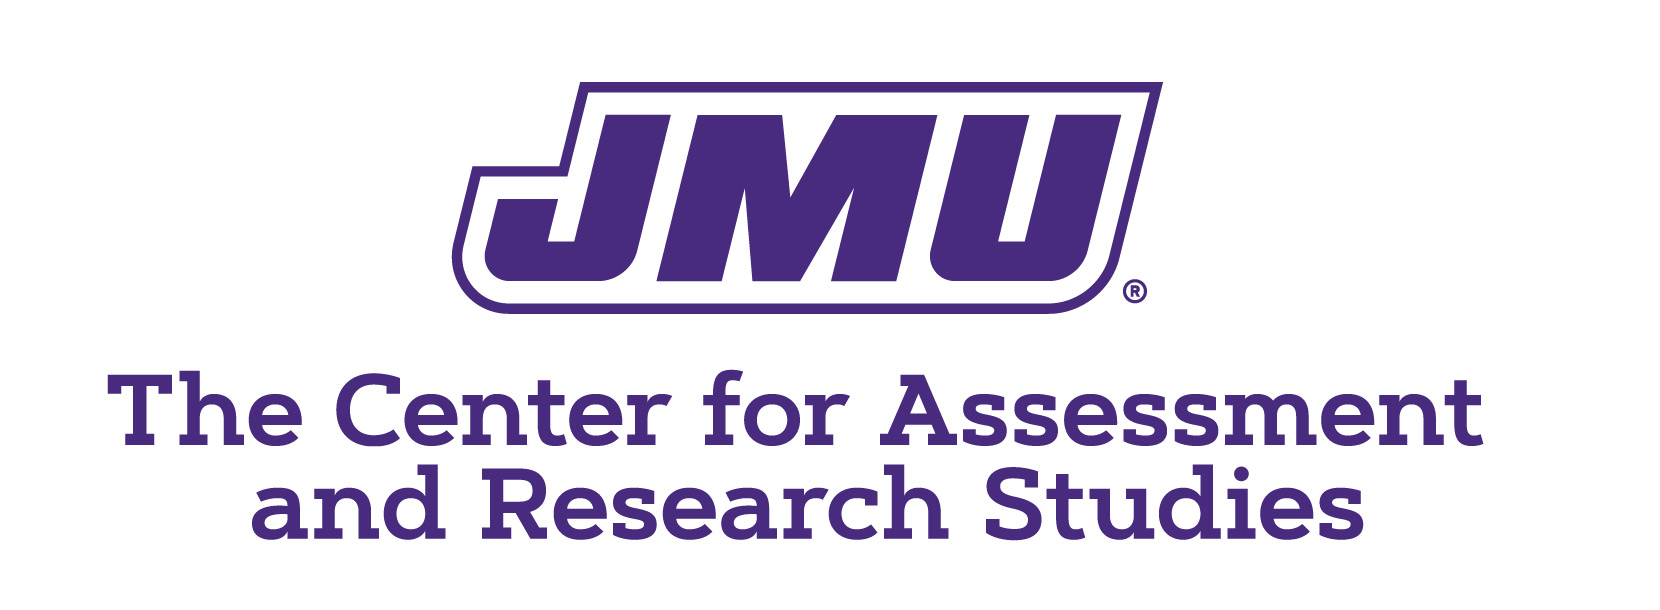 JMU Center for Assessment and Research Studies